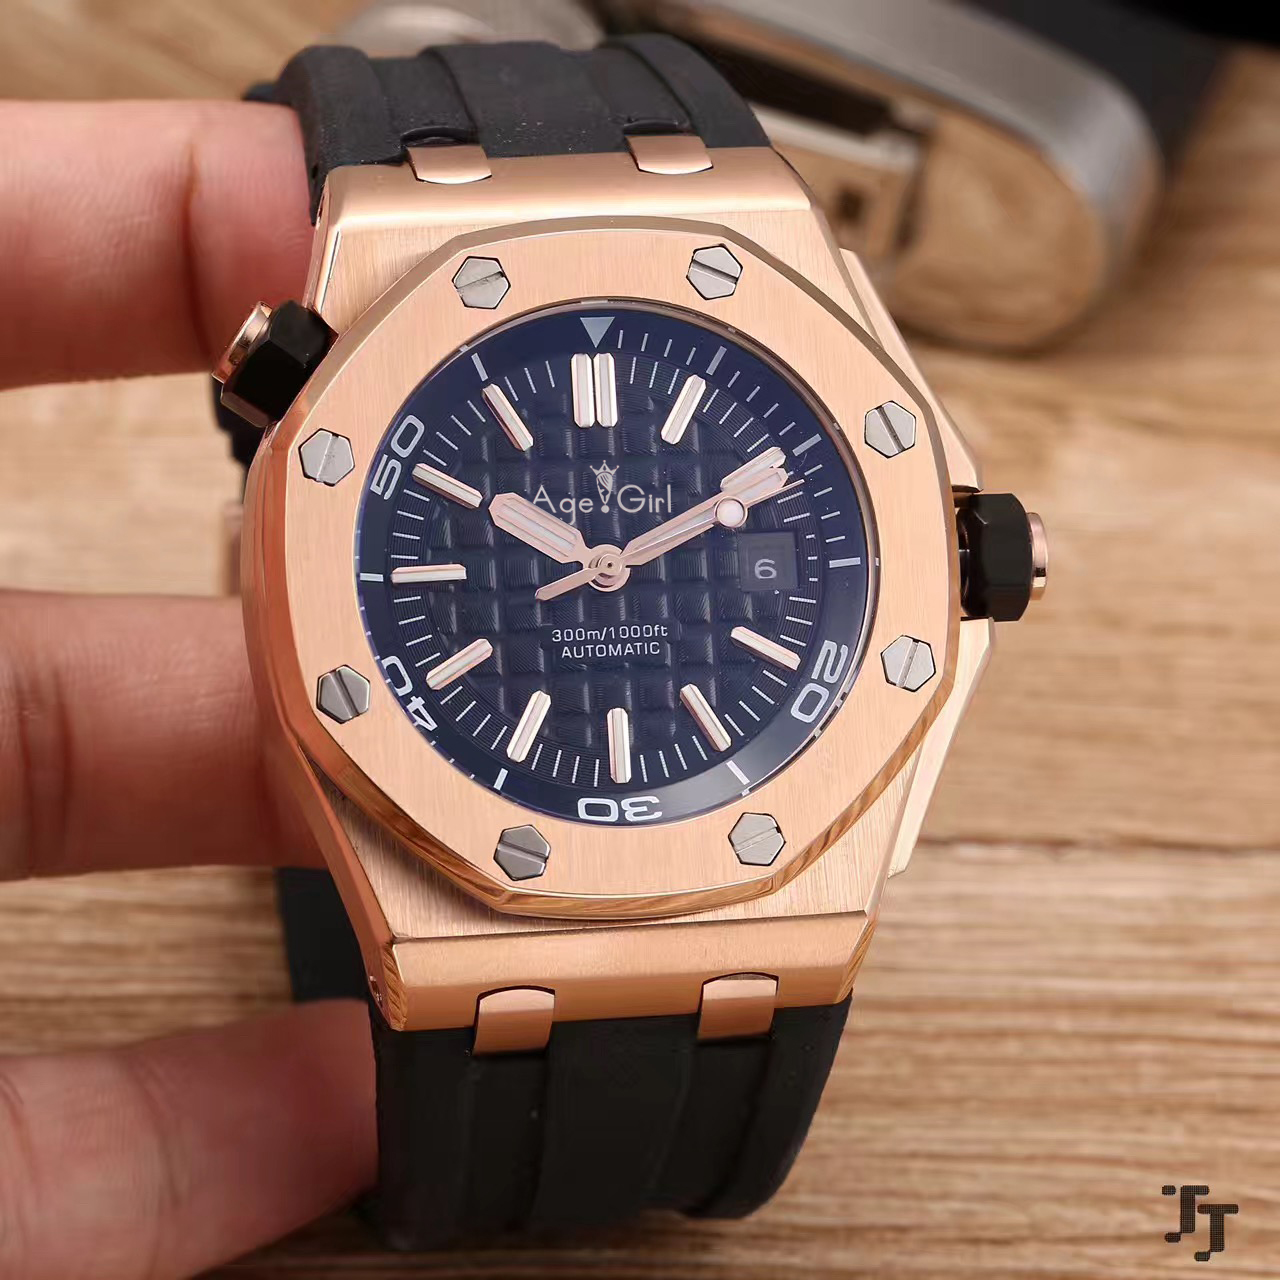 Luxury Brand New Men Stainless Steel Automatic Mechanical Watch Diver Sapphire Sport Watches Black Rubber Rose Gold Grey LimitedLuxury Brand New Men Stainless Steel Automatic Mechanical Watch Diver Sapphire Sport Watches Black Rubber Rose Gold Grey Limited